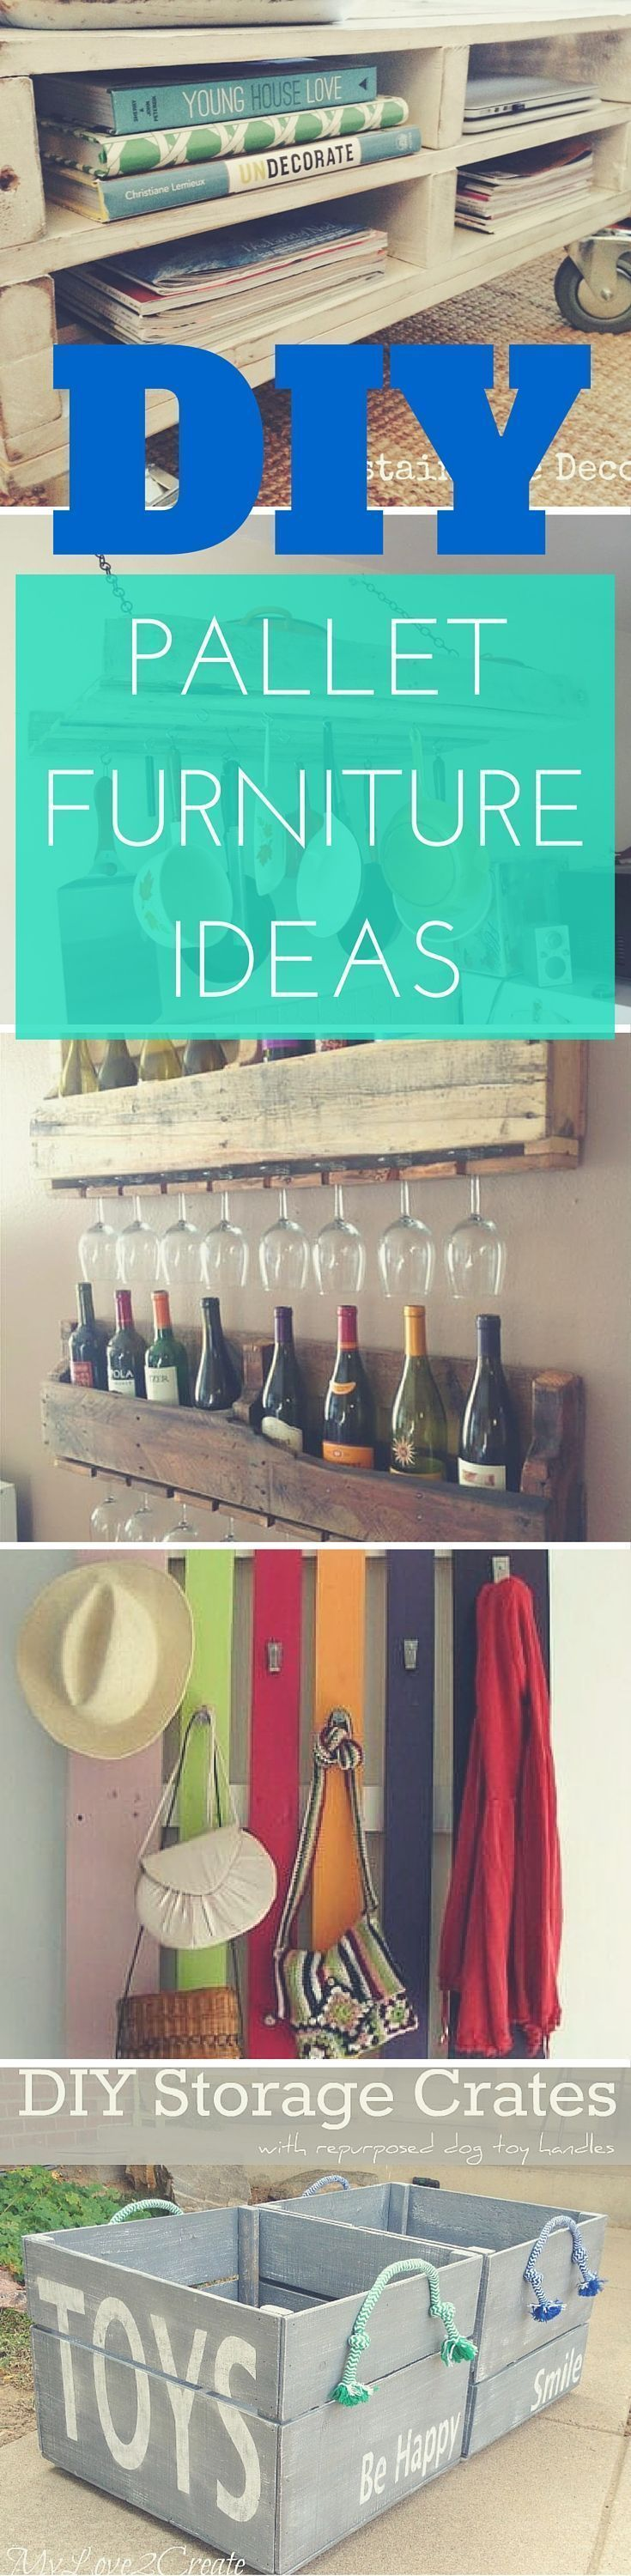 27 DIY Pallet Furniture ideas  indoor/outdoor pallet furniture from coat hanger ...